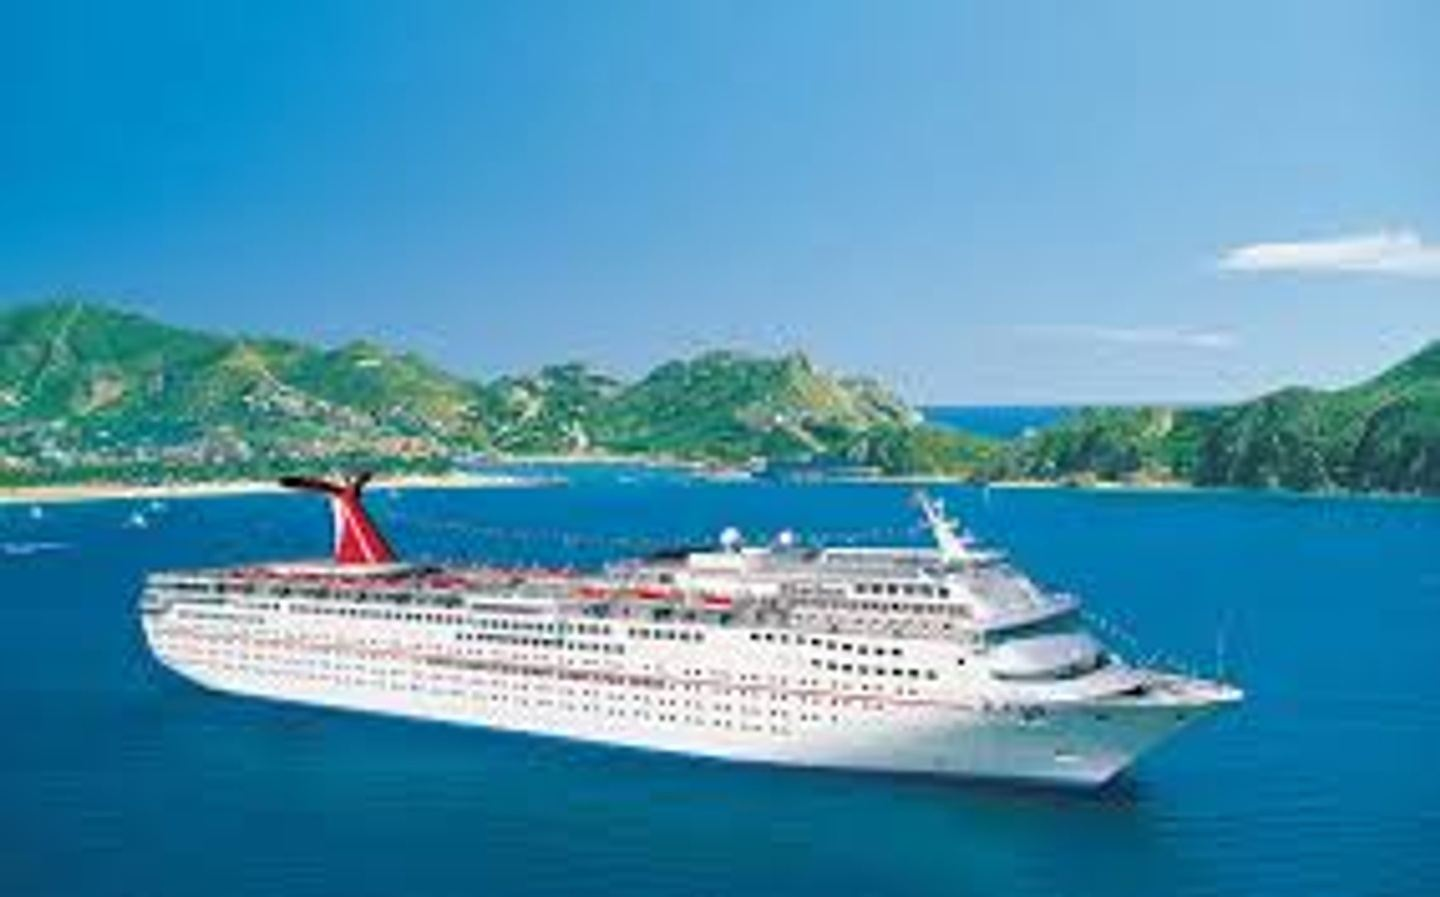 The 5 Day Western Caribbean Spring Vacation